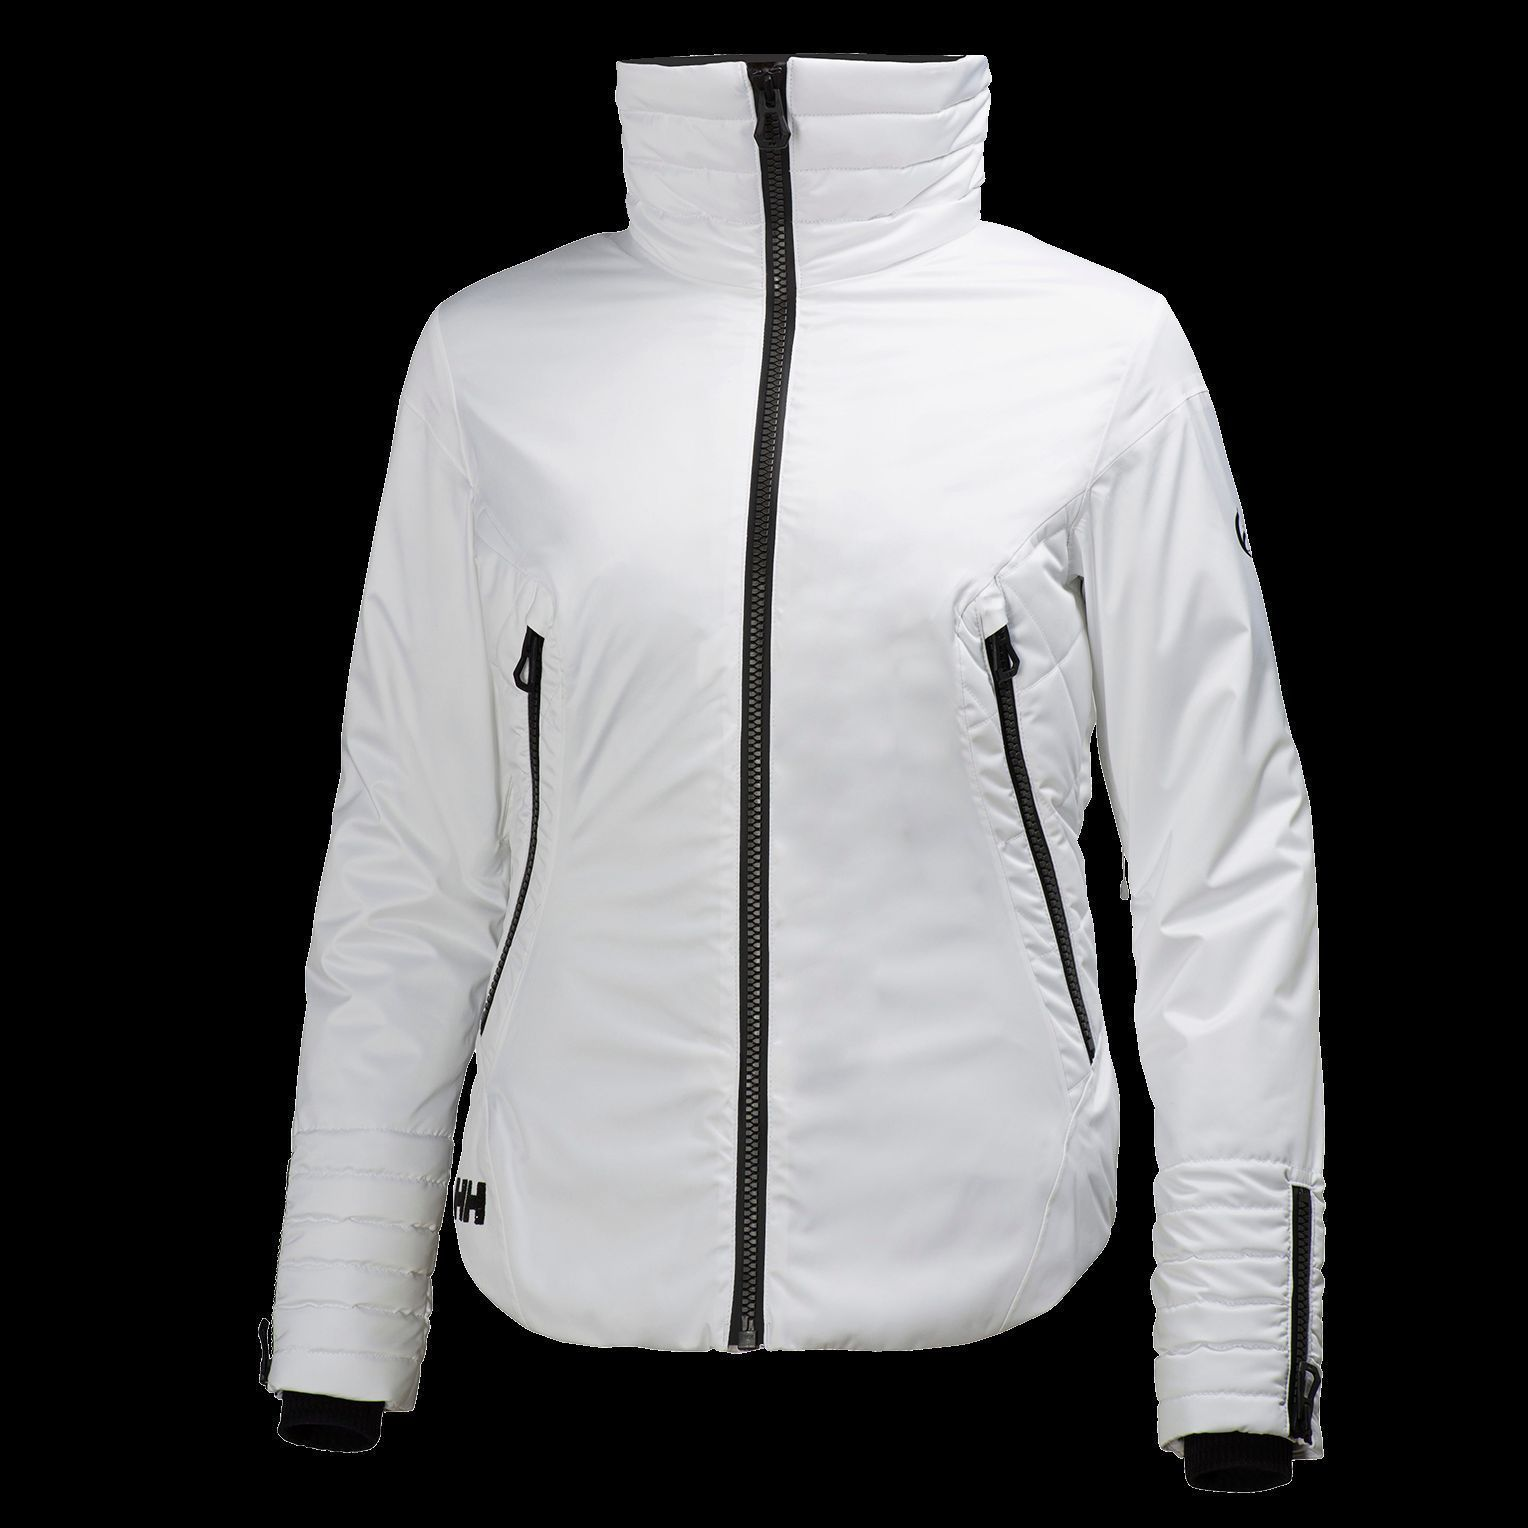 http://www.athenefashion.com/ebay/quick-ends-soon-new-helly-hansen-womens-xs-w-victorious-jacket-winter-ski-coat-white-62549/ cool Quick Ends Soon New Helly Hansen Womens XS W Victorious Jacket Winter Ski Coat White 62549